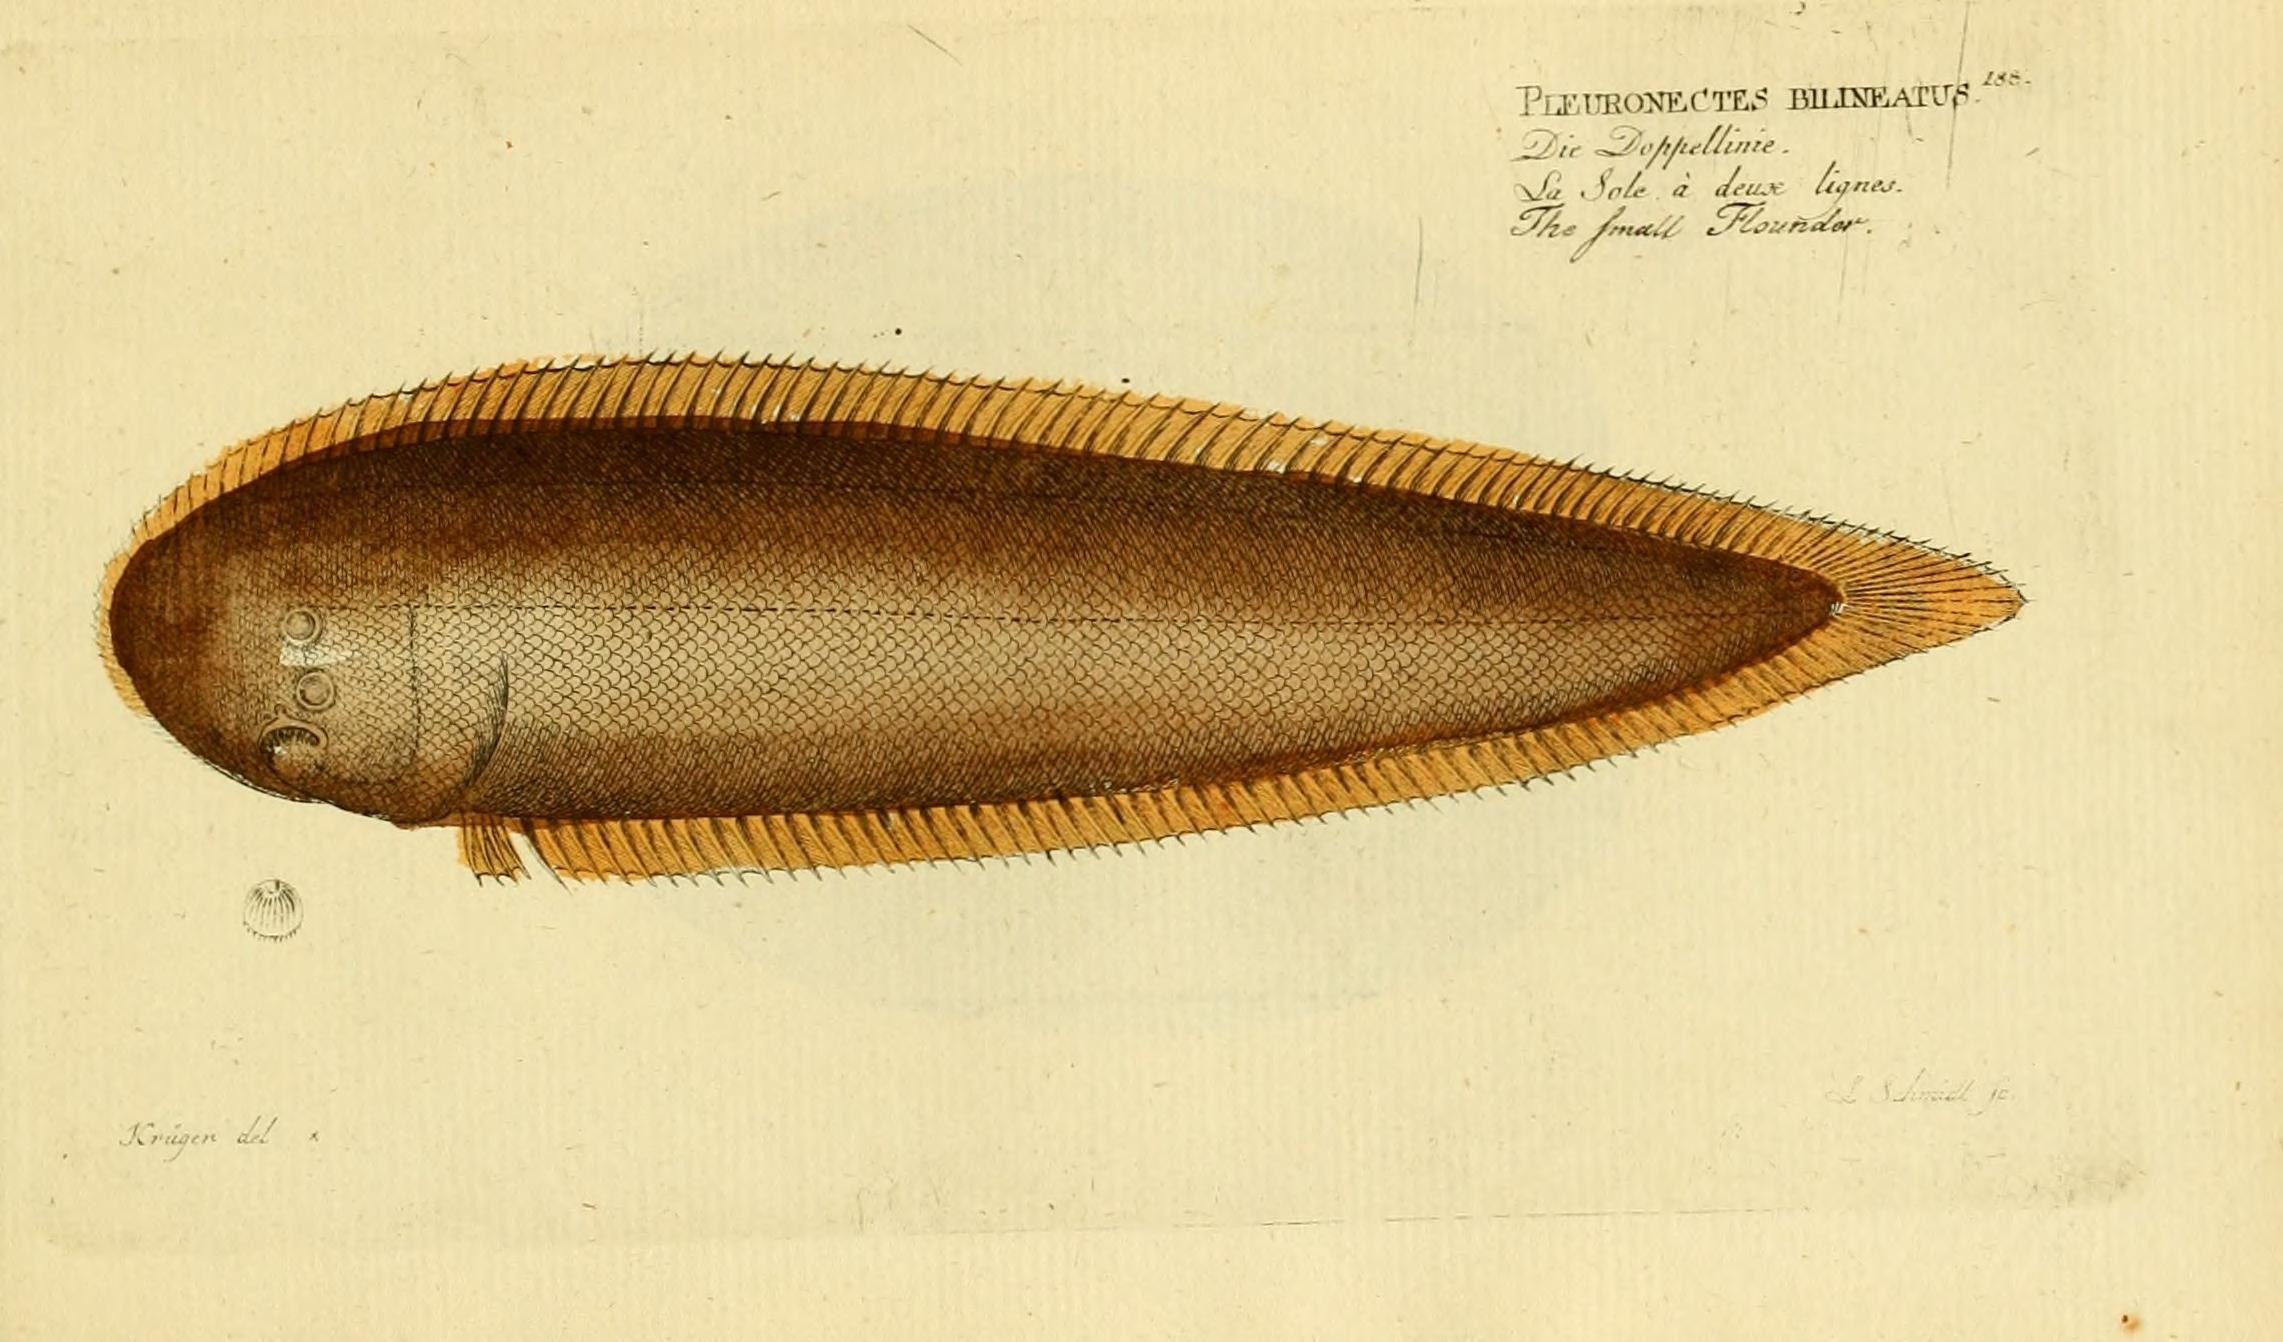 Image of Double-lined tongue sole